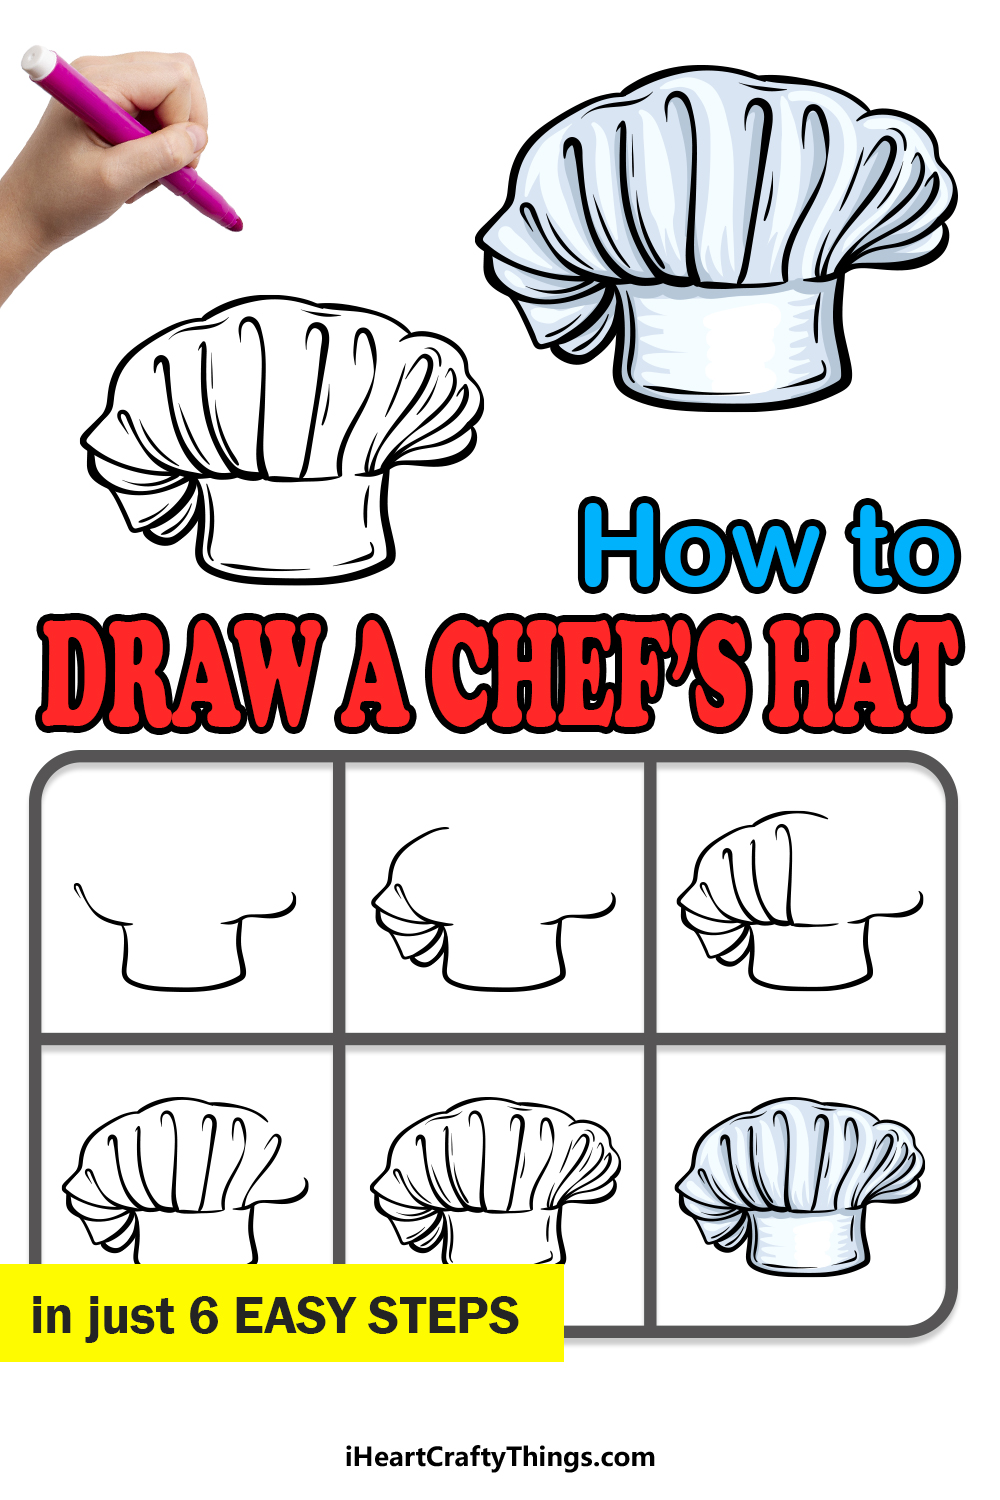 how to draw a chef's hat in 6 easy steps